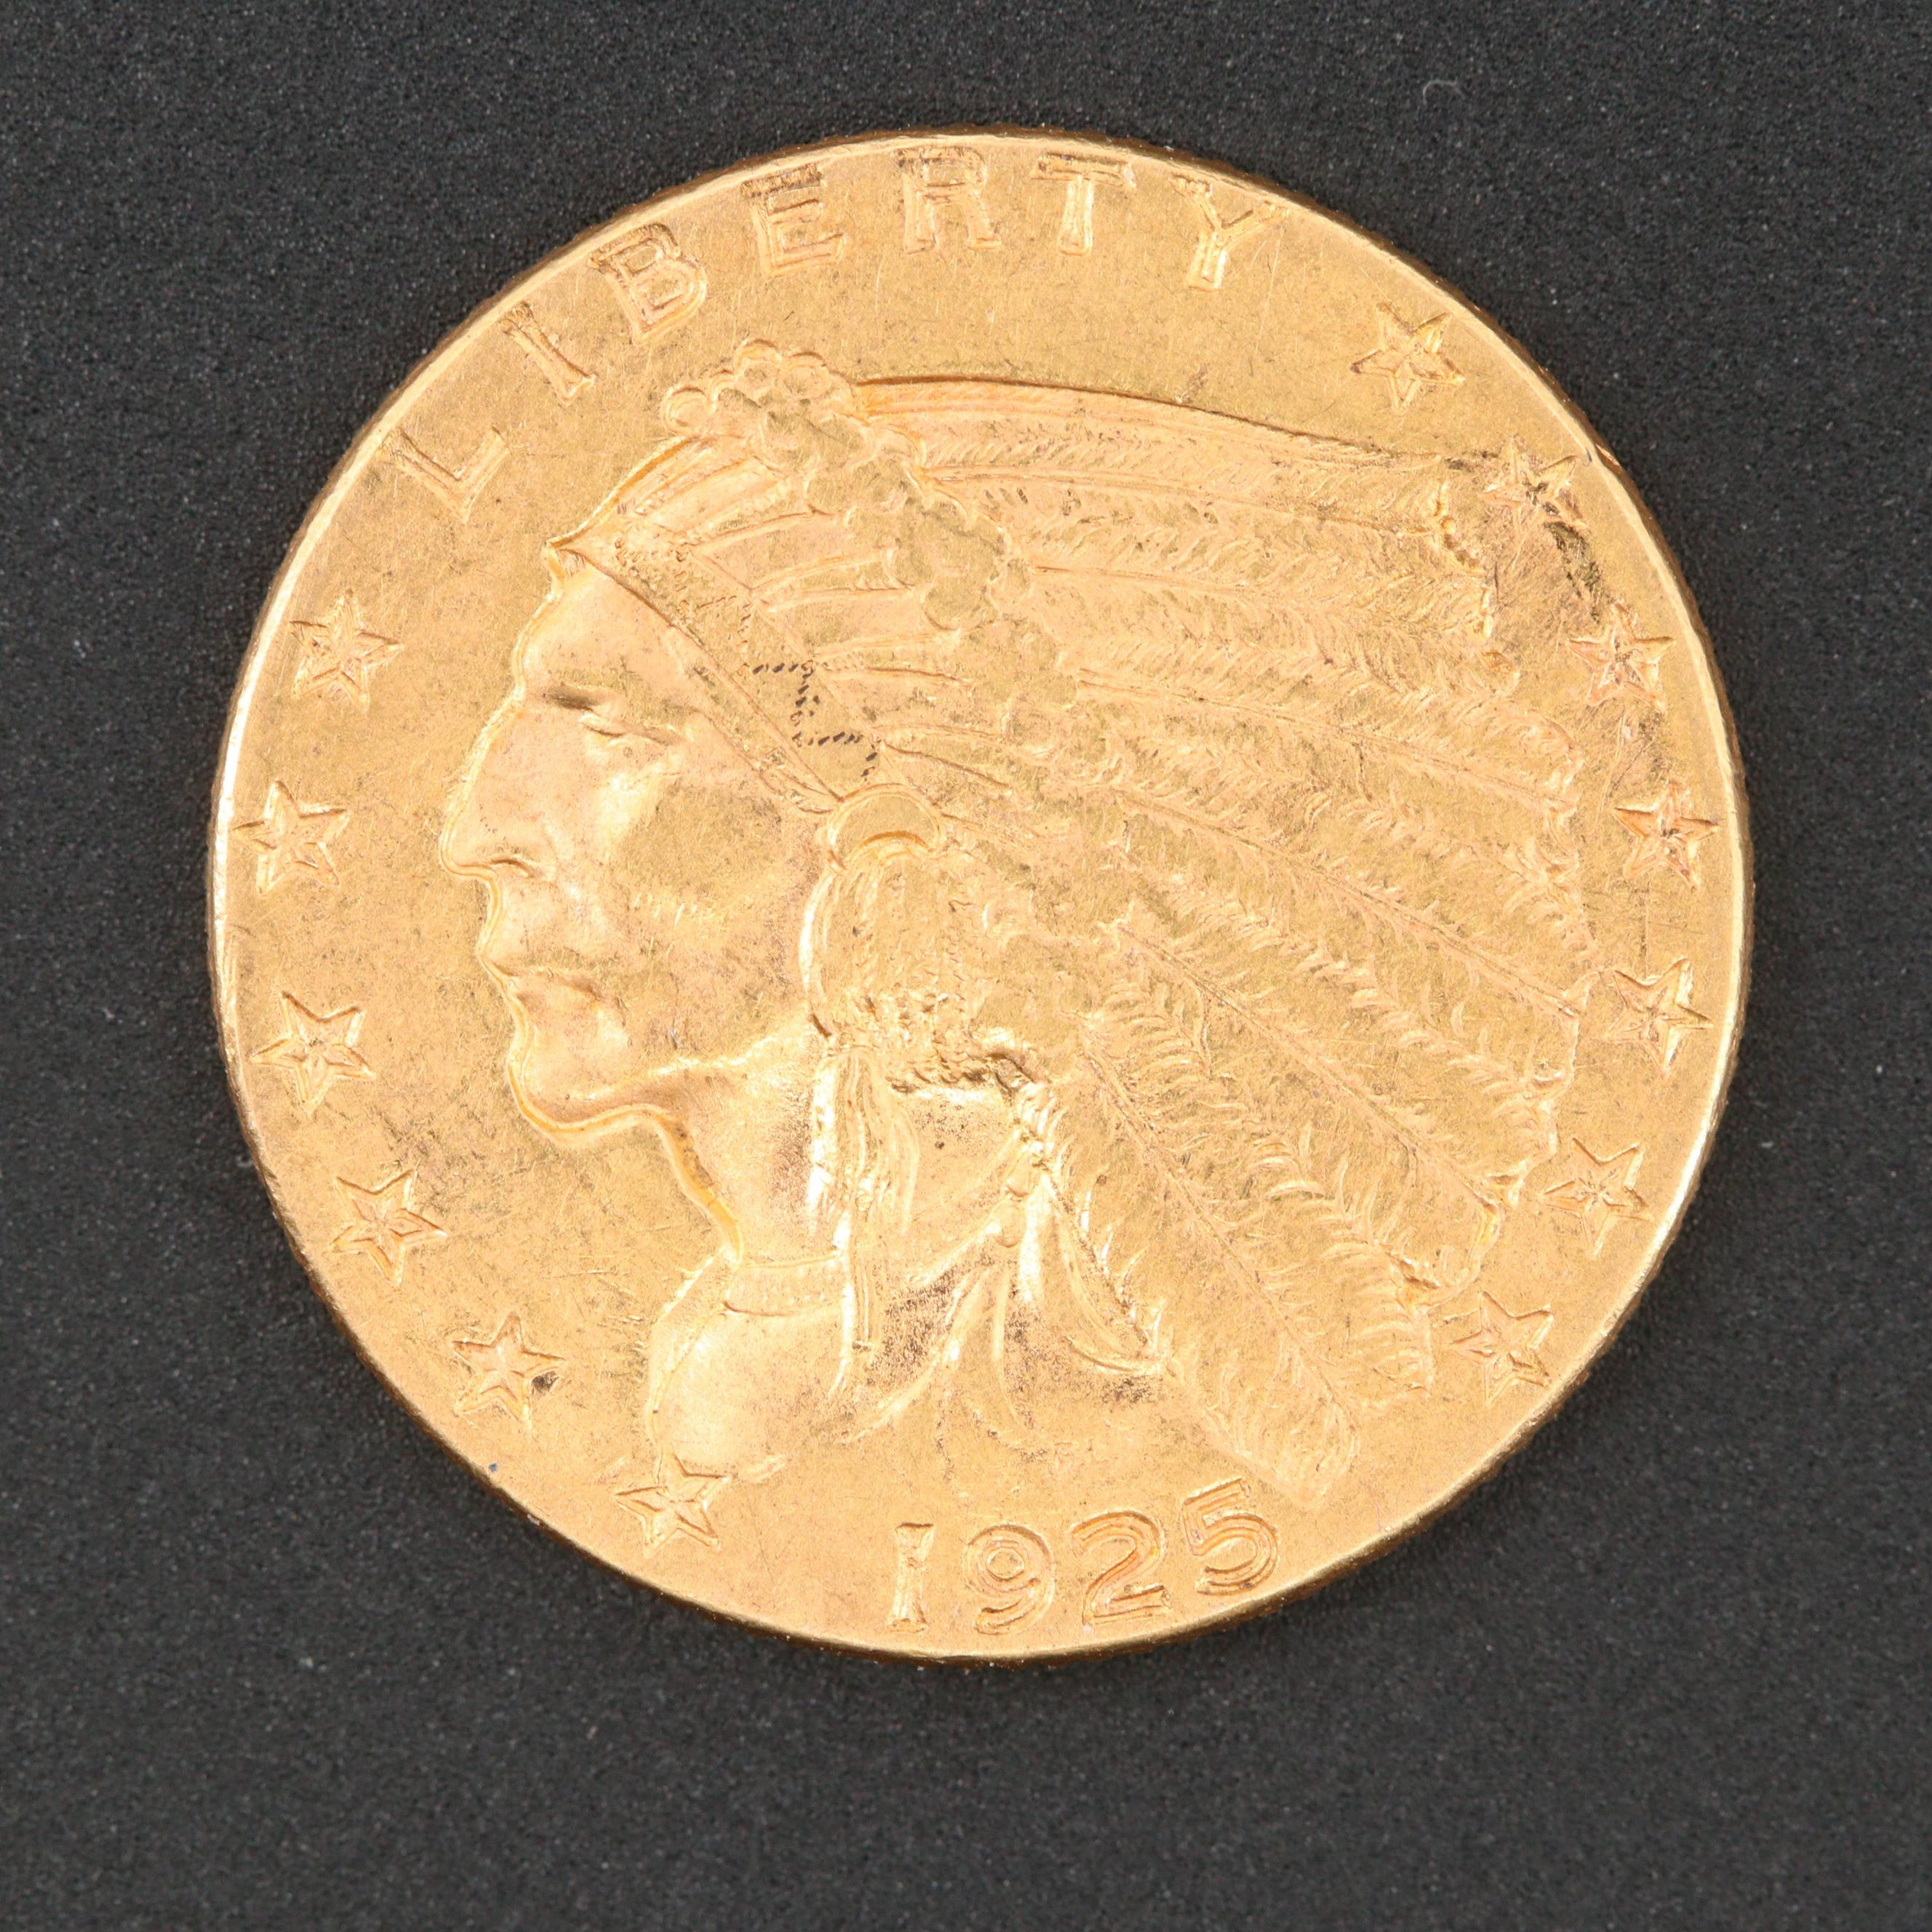 1925-D Indian Head $2 1/2 Gold Coin